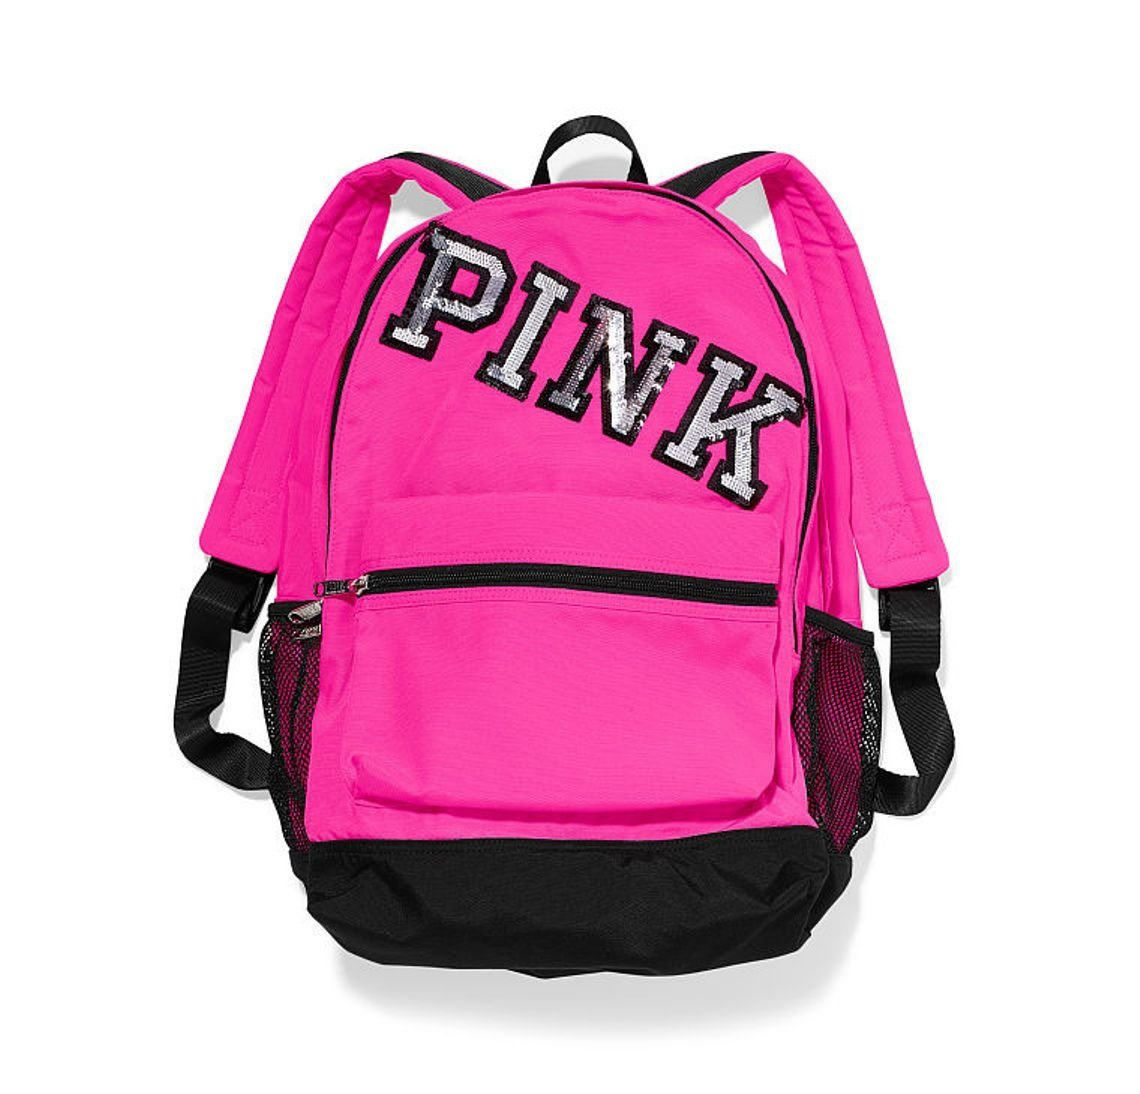 a1c2272497 Buy VICTORIAS SECRET PINK Campus Backpack - Neon Hot PINK W Bling in ...